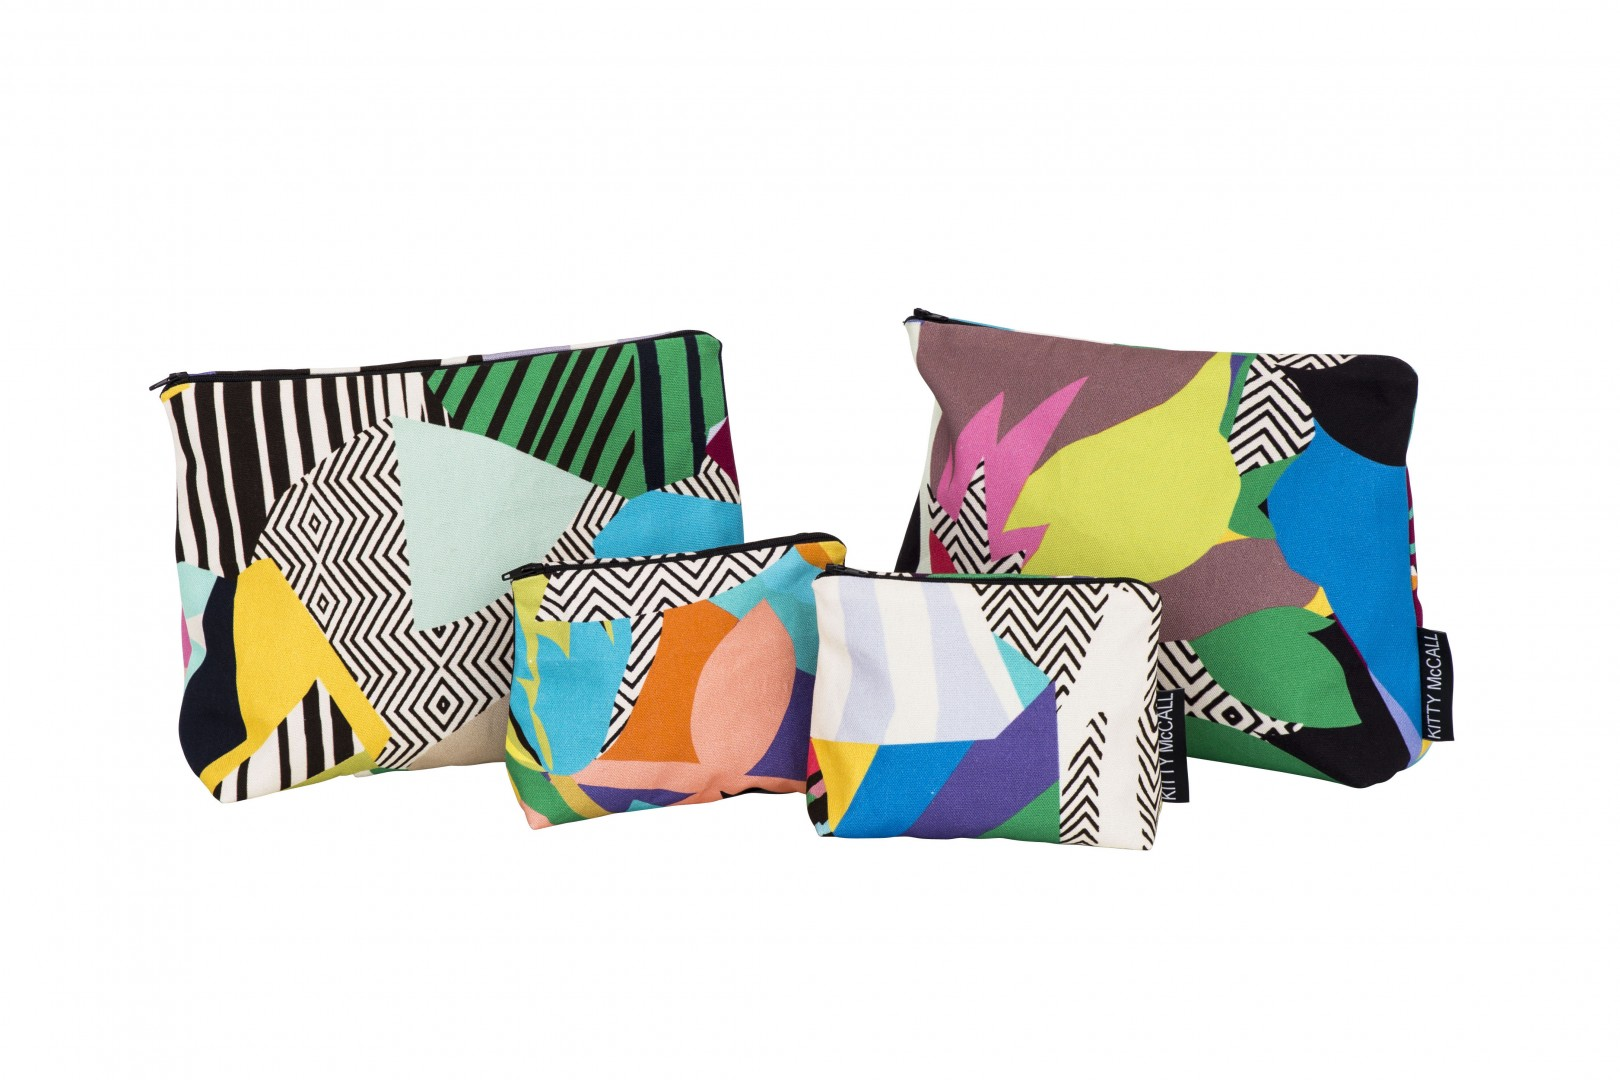 Product shots of Kitty McCall textile items